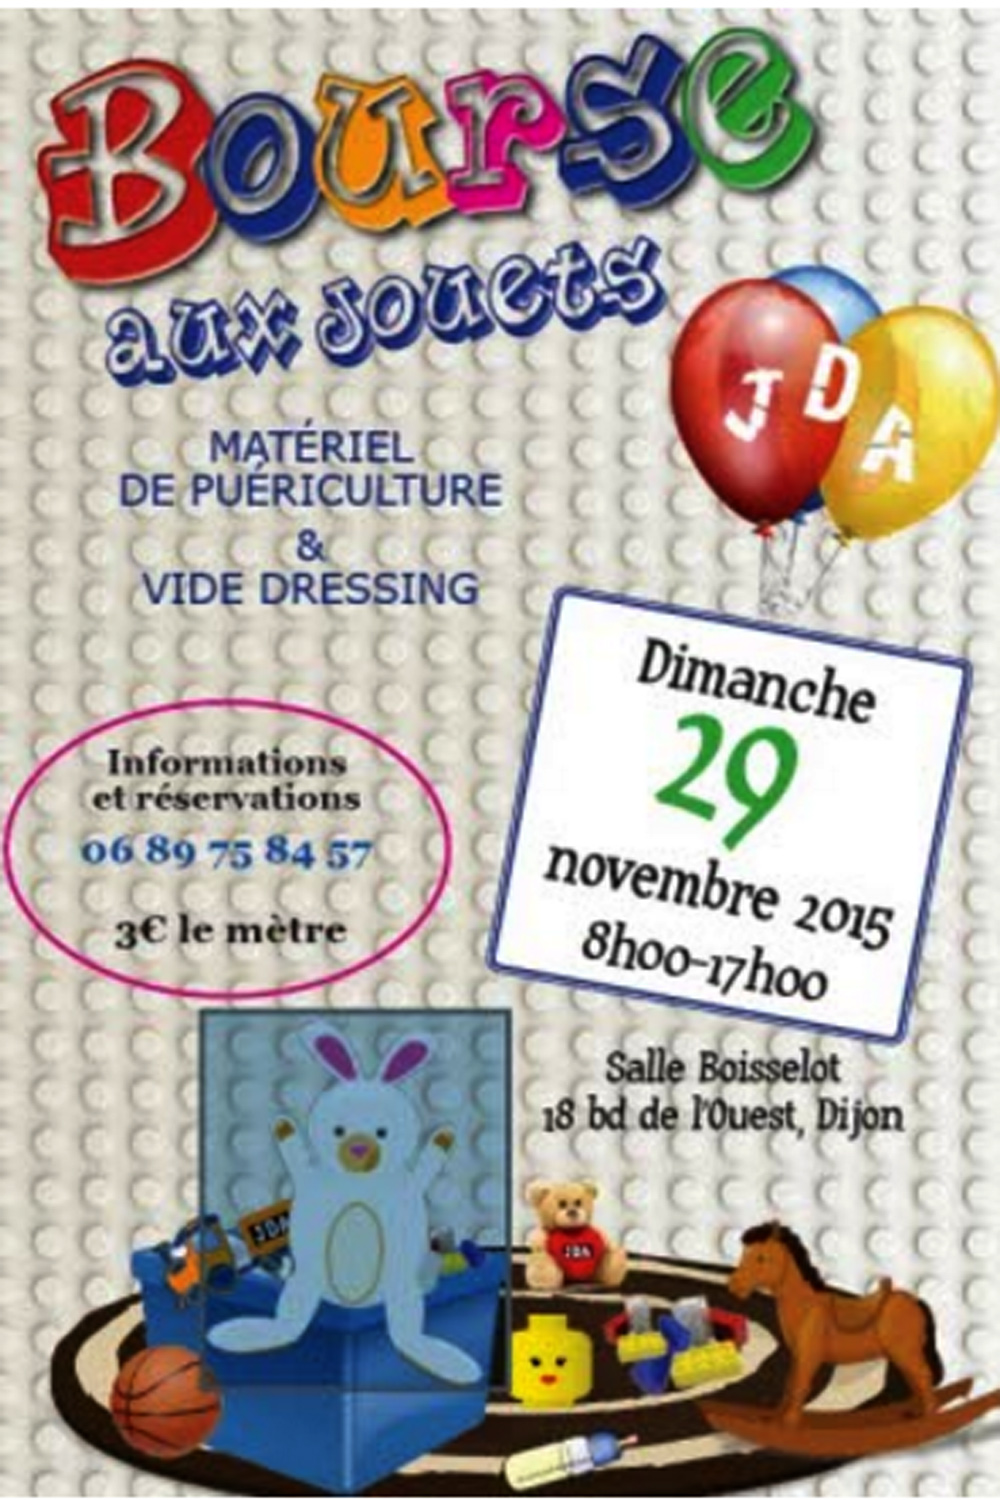 dijon sport news blog archive bourse aux jouets et vide dressing de l association jda. Black Bedroom Furniture Sets. Home Design Ideas